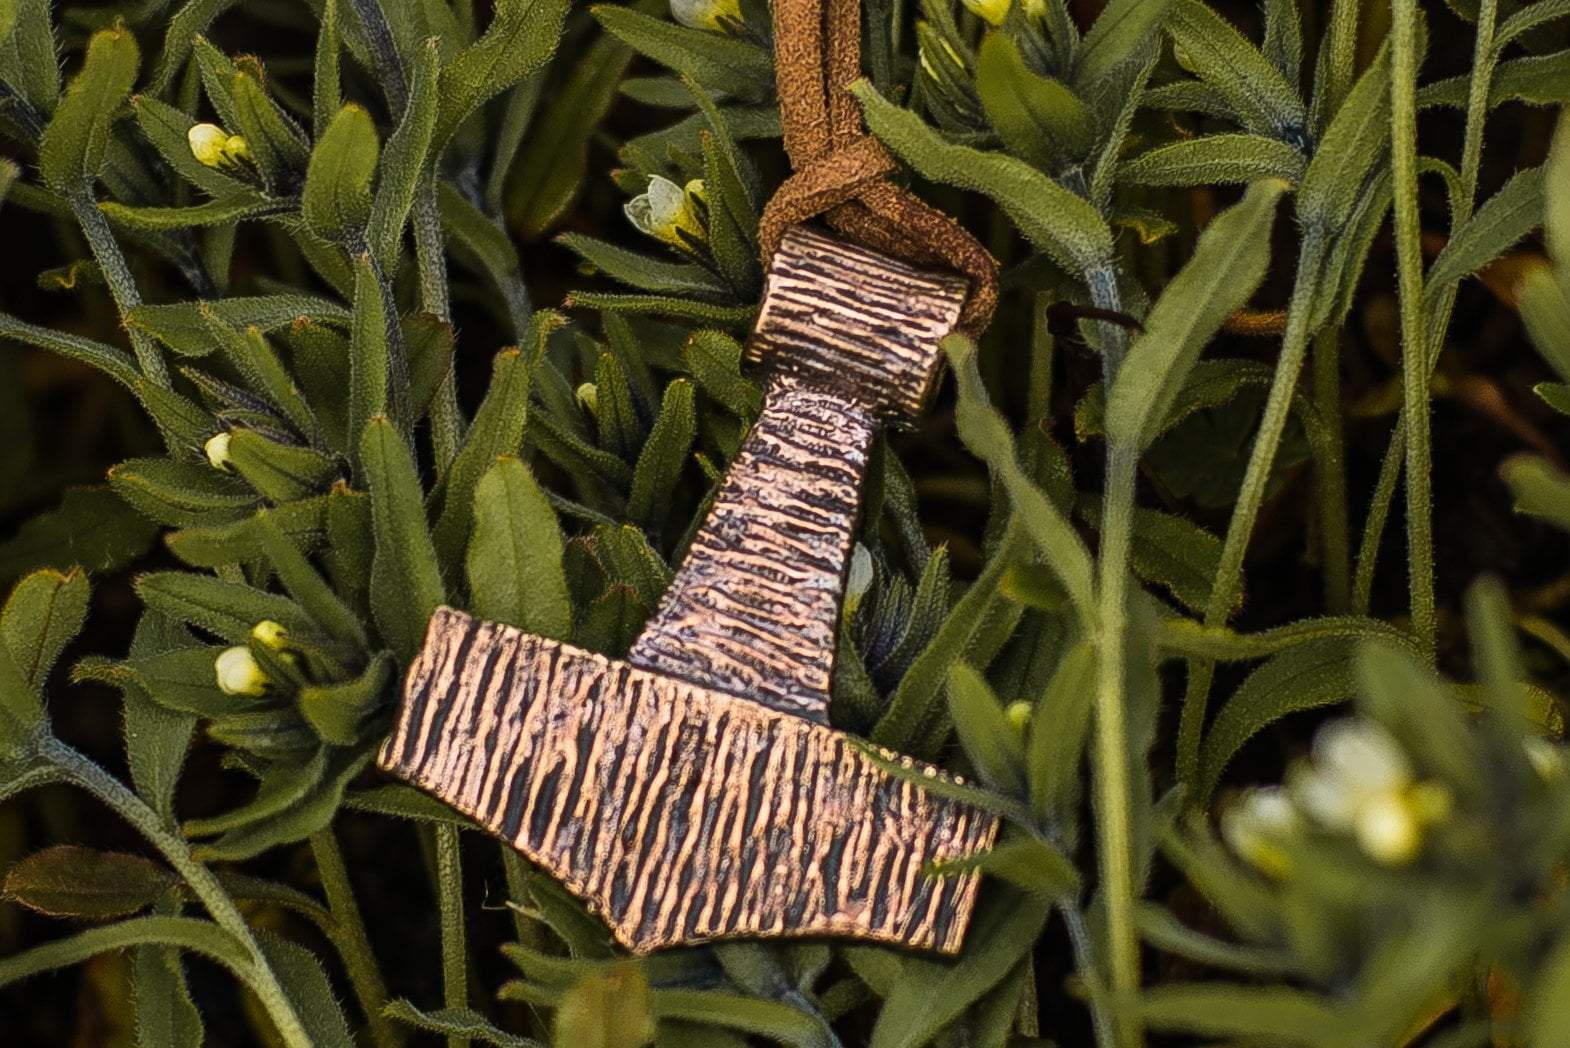 Viking Bronze Mjolnir Pendant with Wooden Style Ancient Treasures Ancientreasures Viking Odin Thor Mjolnir Celtic Ancient Egypt Norse Norse Mythology